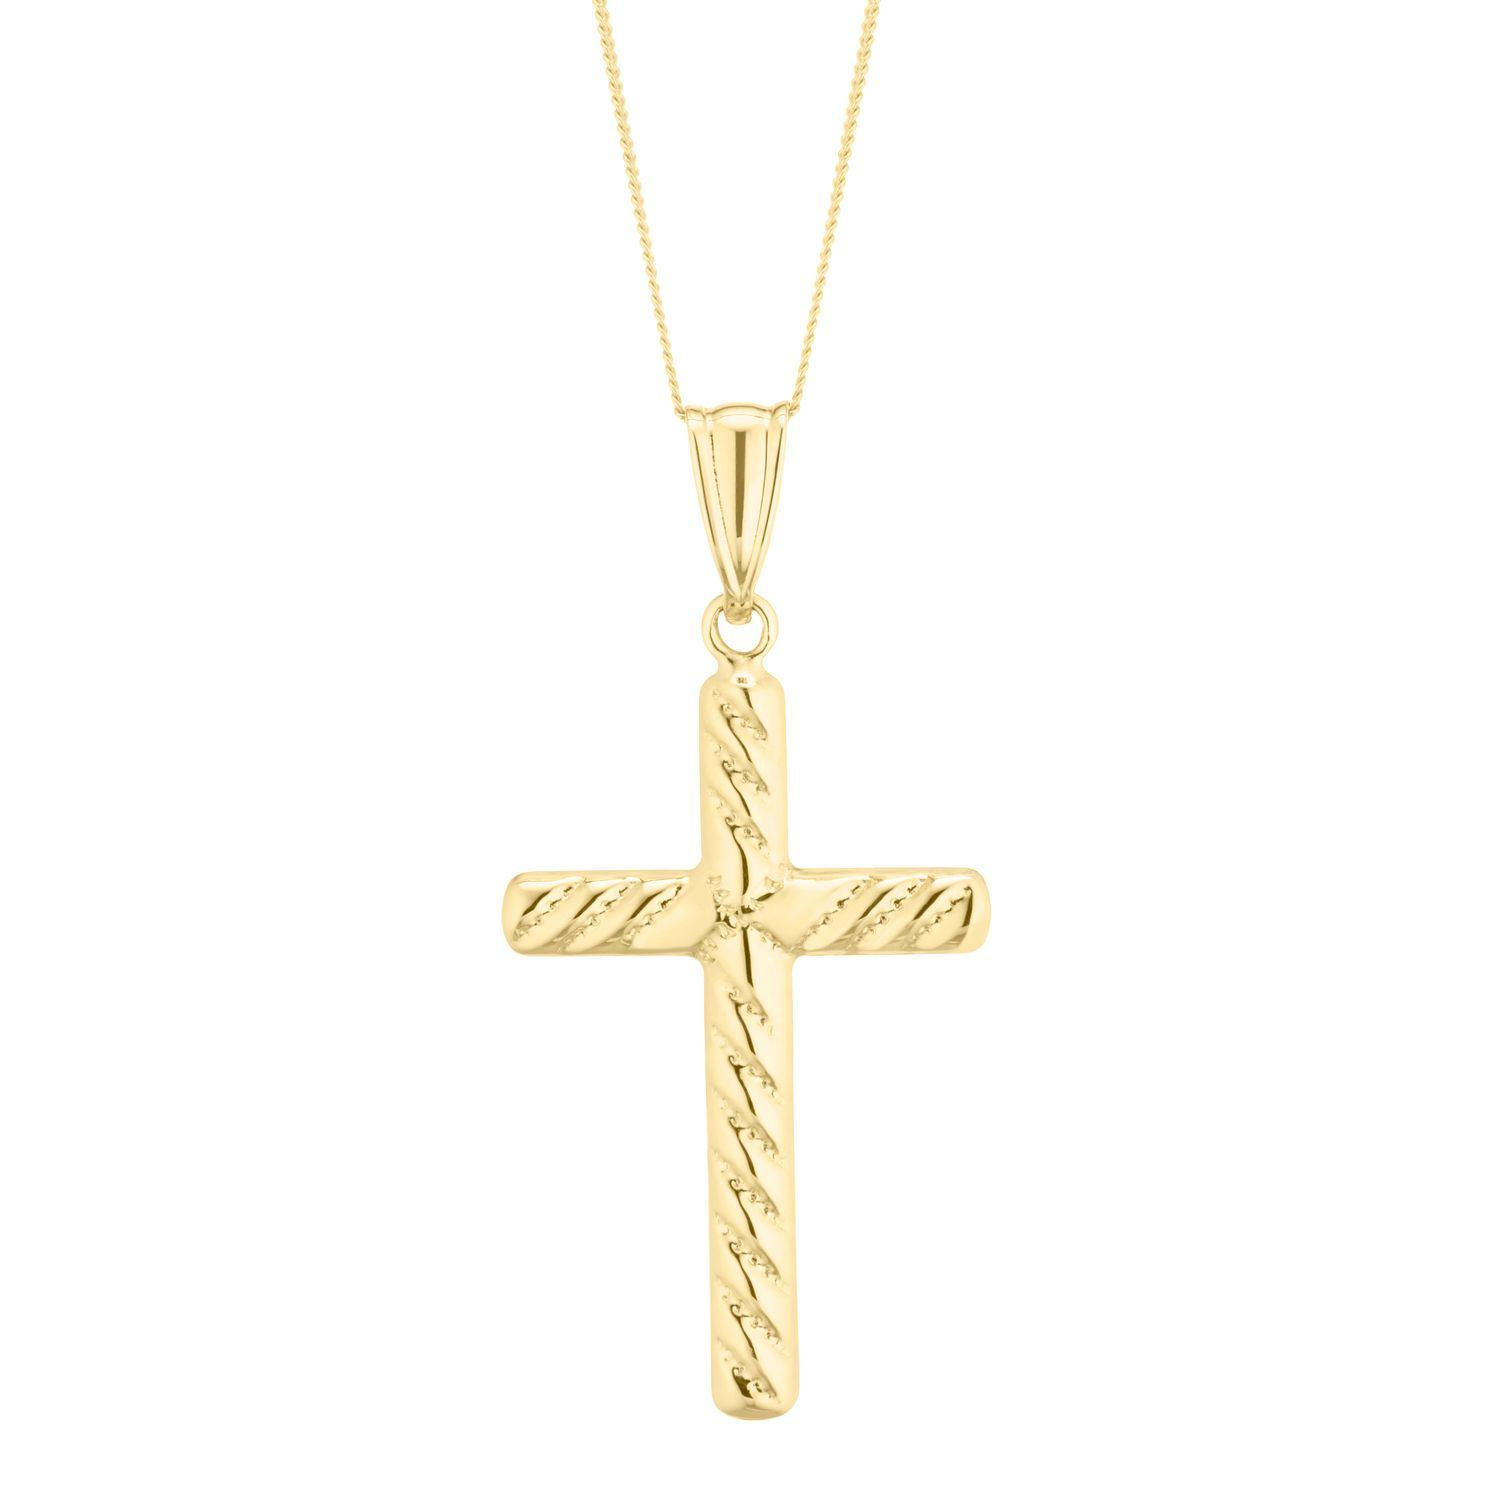 9ct Yellow Gold Rope-Cut Cross Pendant - Product number 5088895